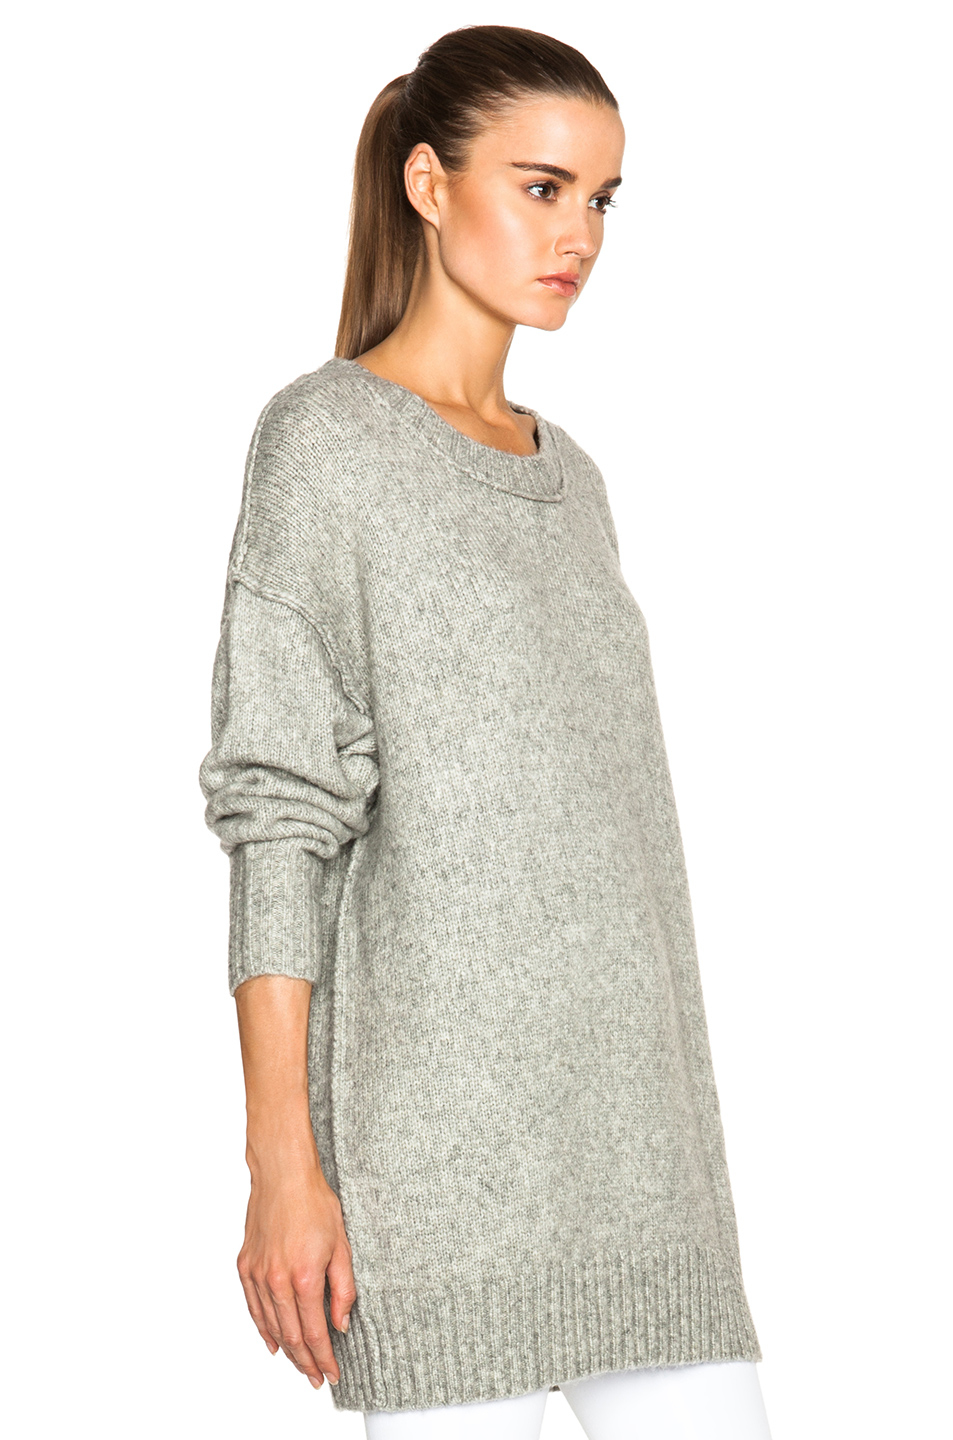 Nlst Oversized Crewneck Sweater in Gray | Lyst